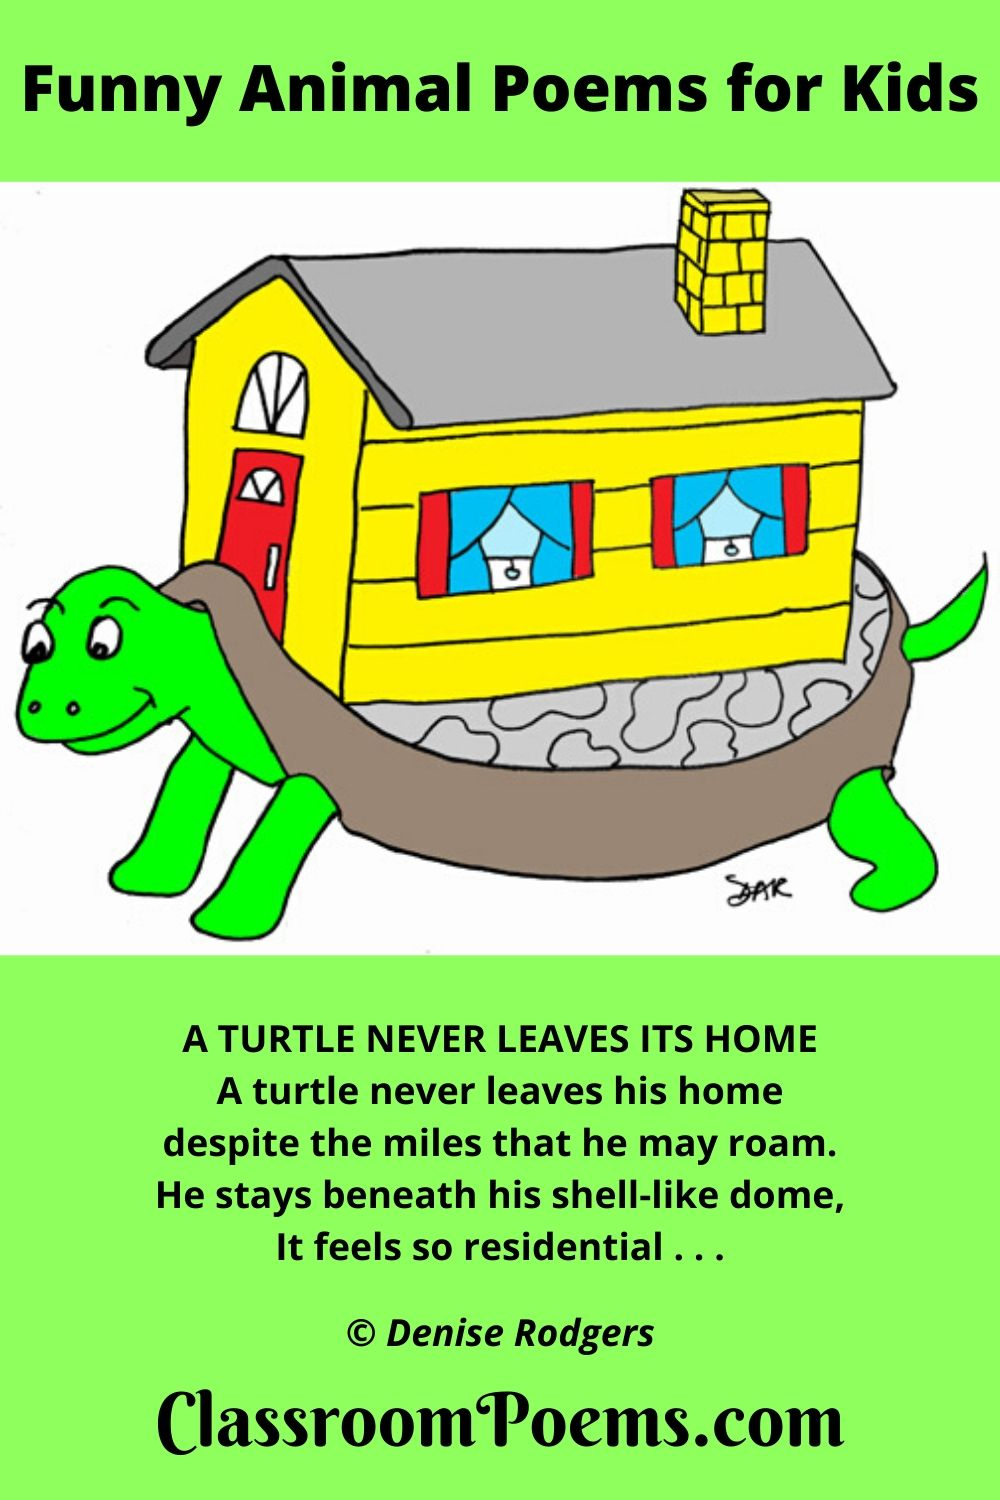 Turtle with house on back. A Turtle Never Leaves His Home, a funny animal poem by Denise Rodgers on ClassroomPoems.com.